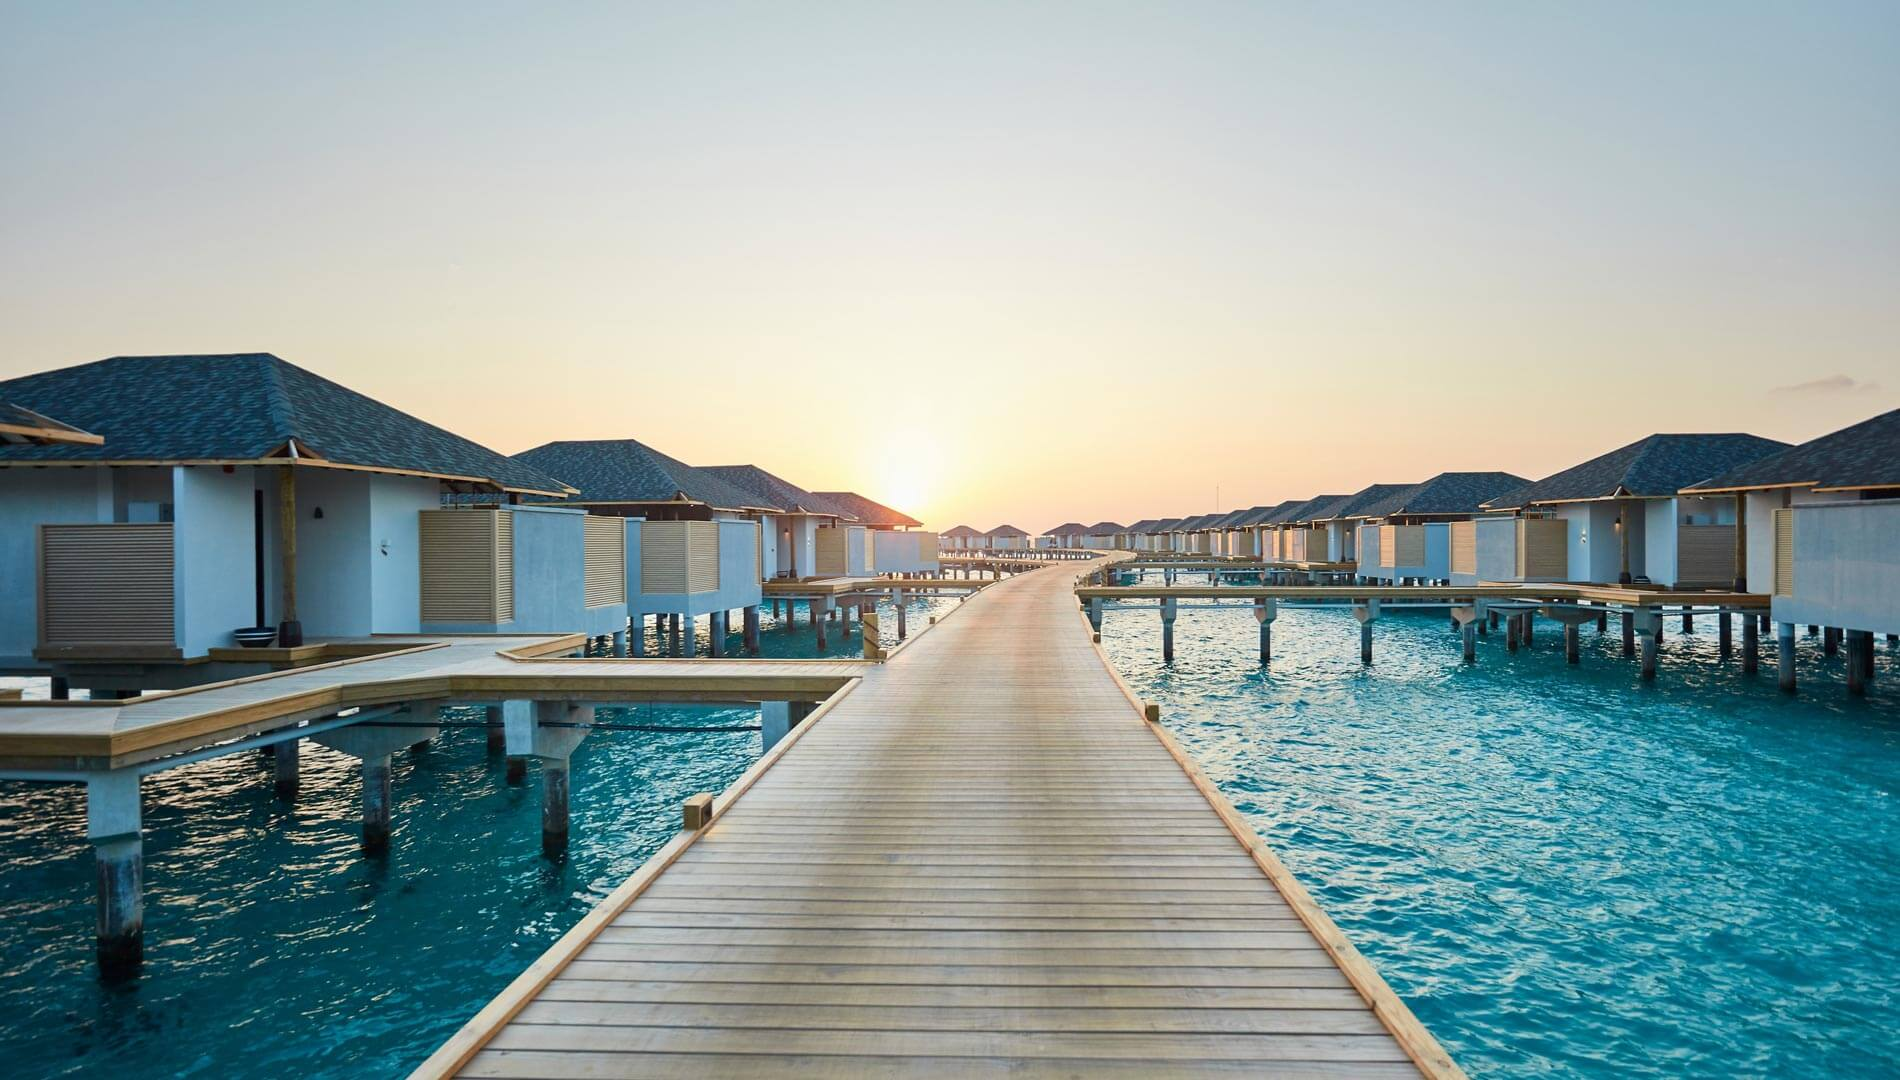 5 Reasons You Need the Overwater Villa in Your Life